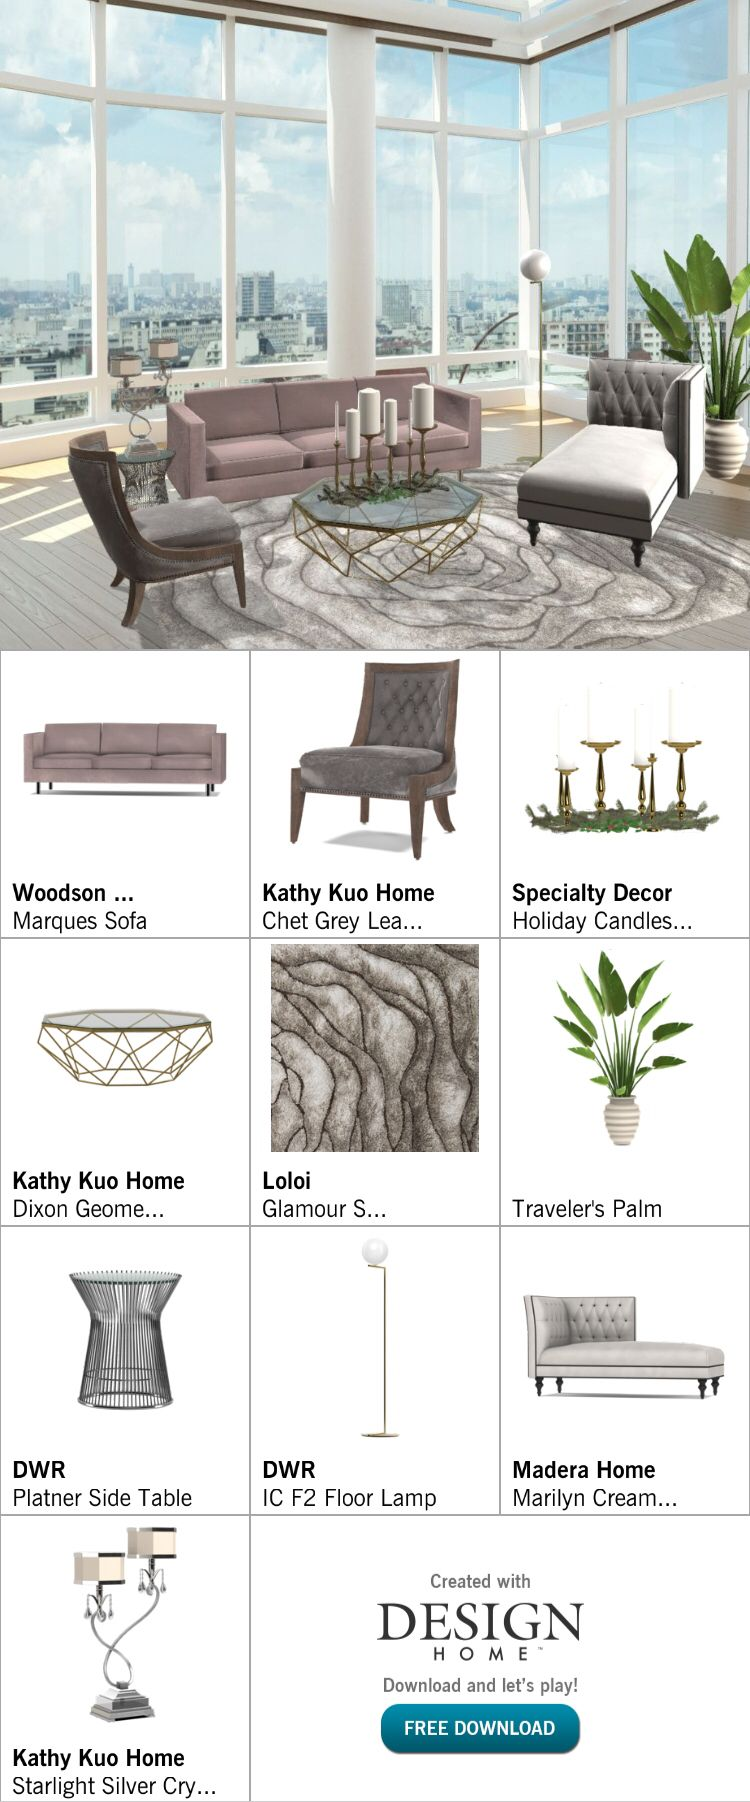 Created with Design Home! | Interior Design Game | Pinterest ...